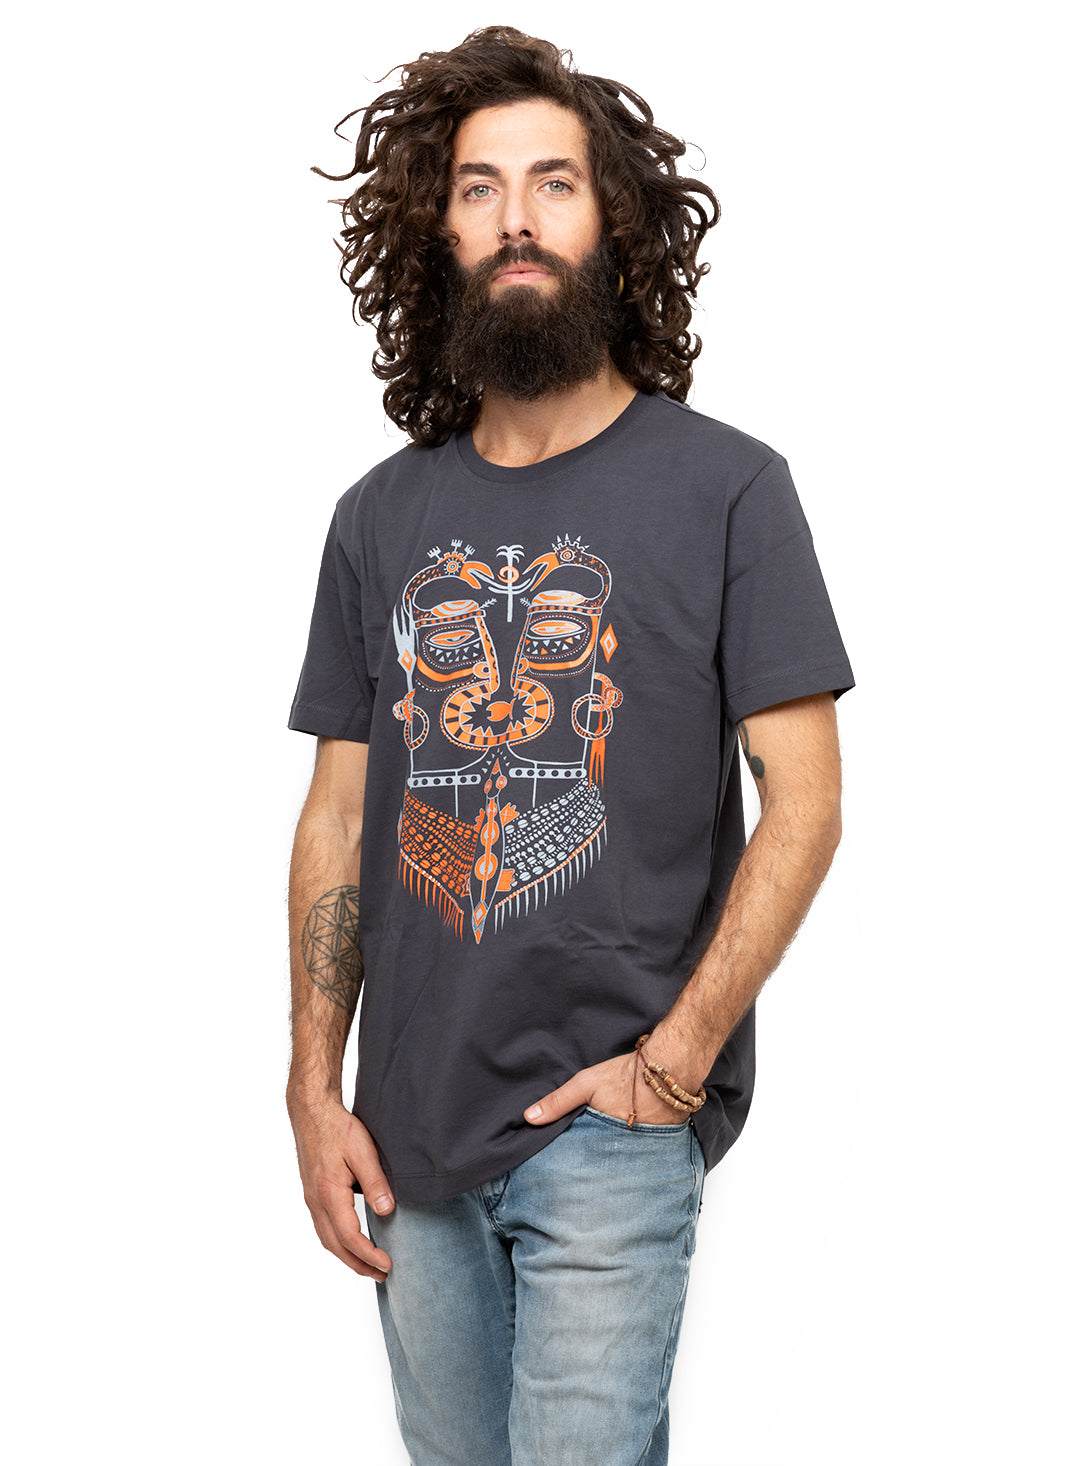 Men S Printed T Shirt Ancient Aztec Story Art Graphic Color Tribal Mask Top Street Habit